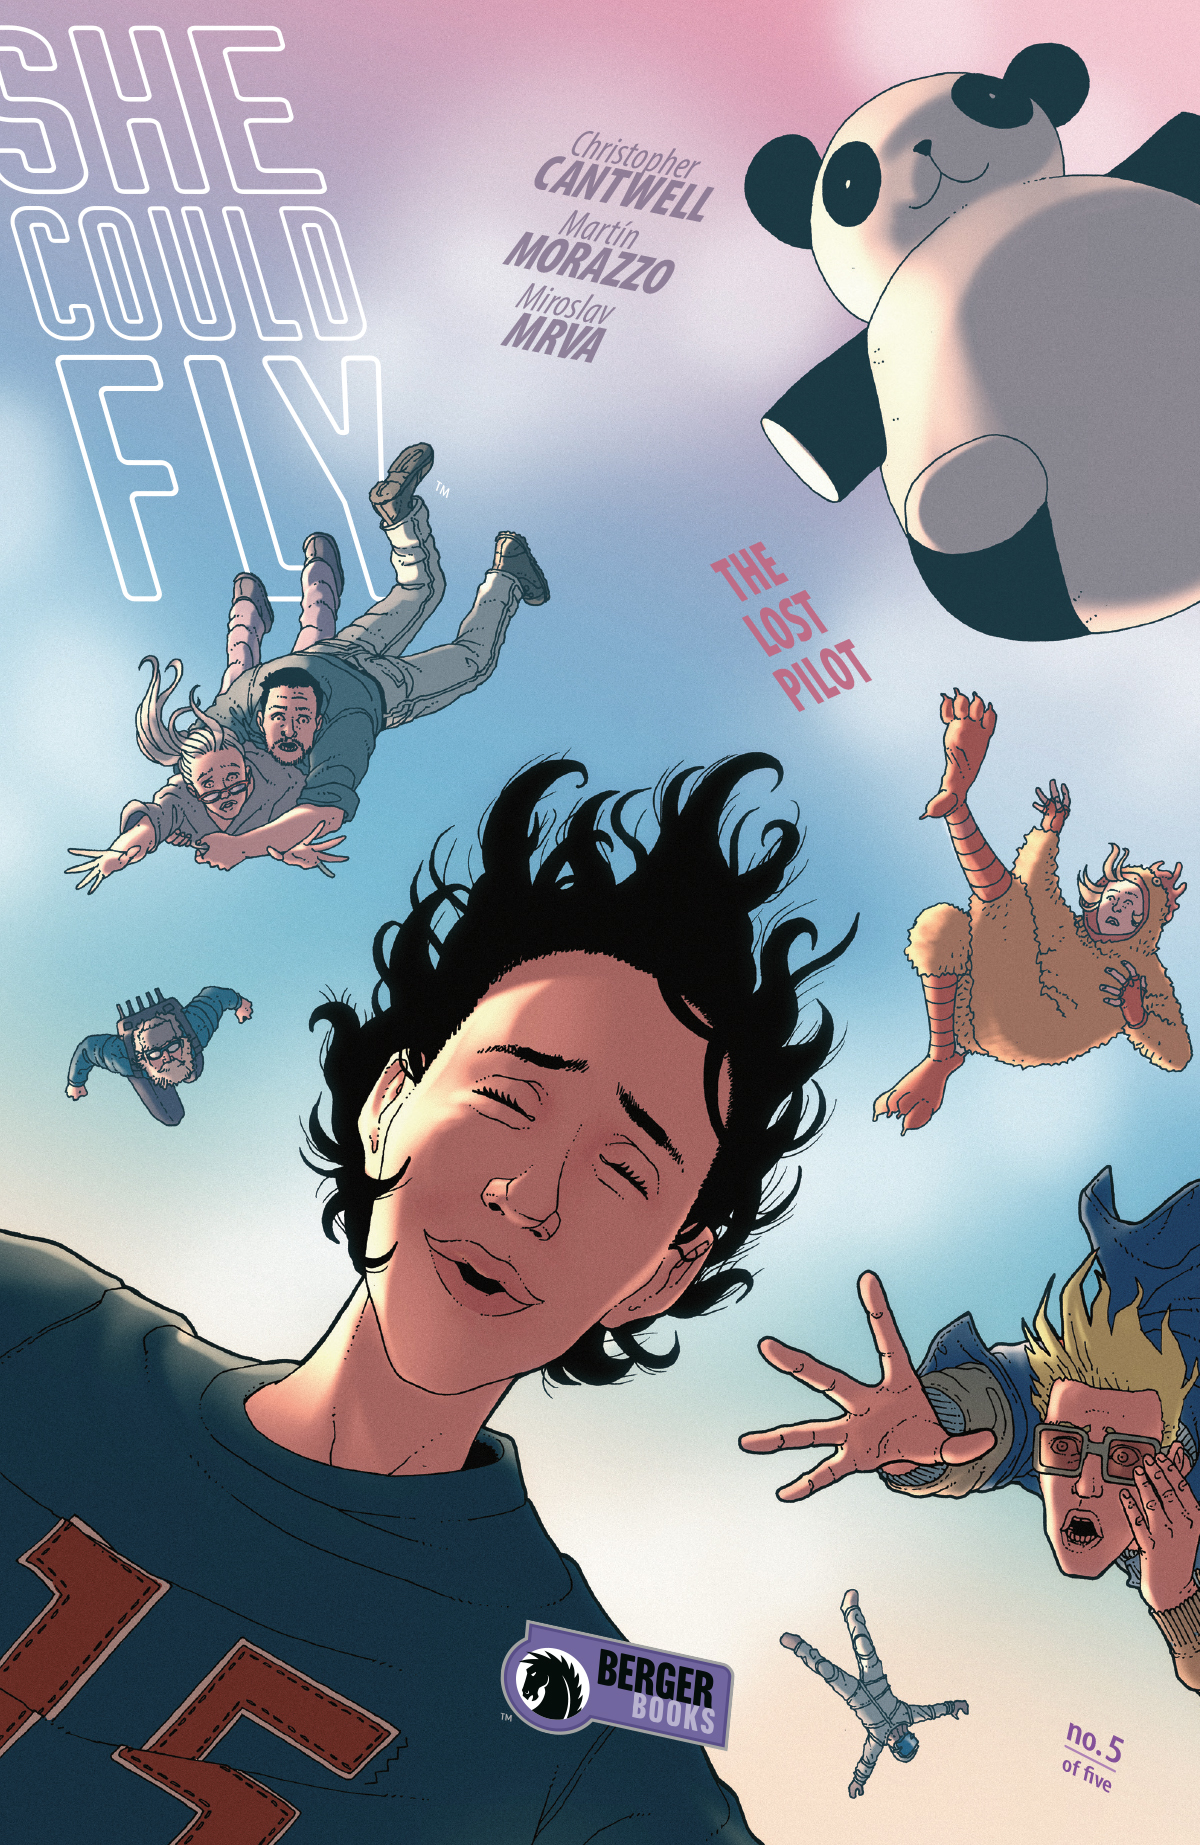 She Could Fly: The Lost Pilot no. 5 (2019 Series)